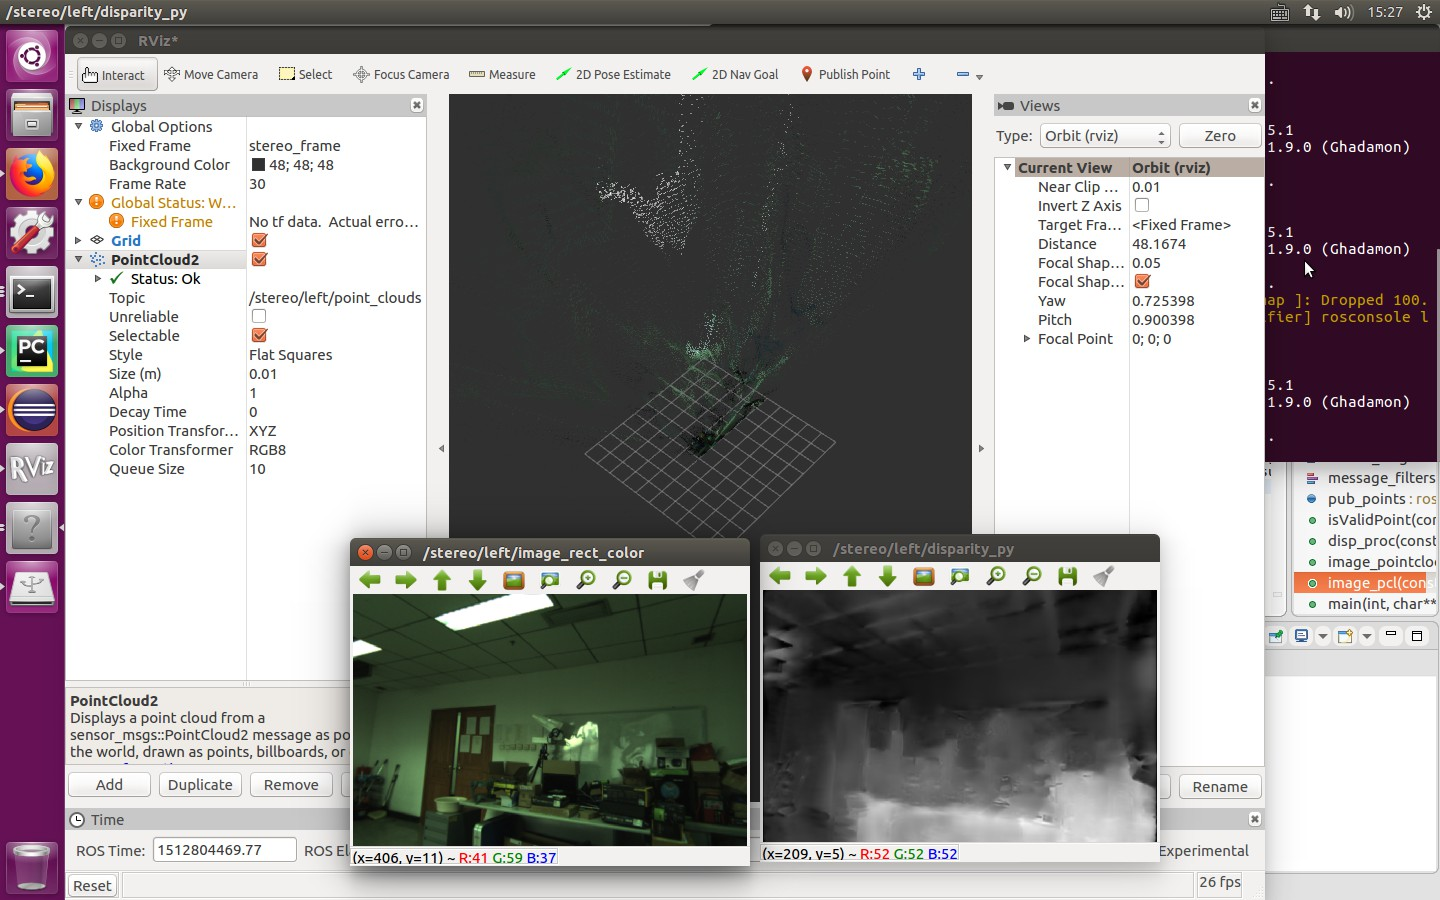 stereo camera disparity map looks well,but point cloud looks strange